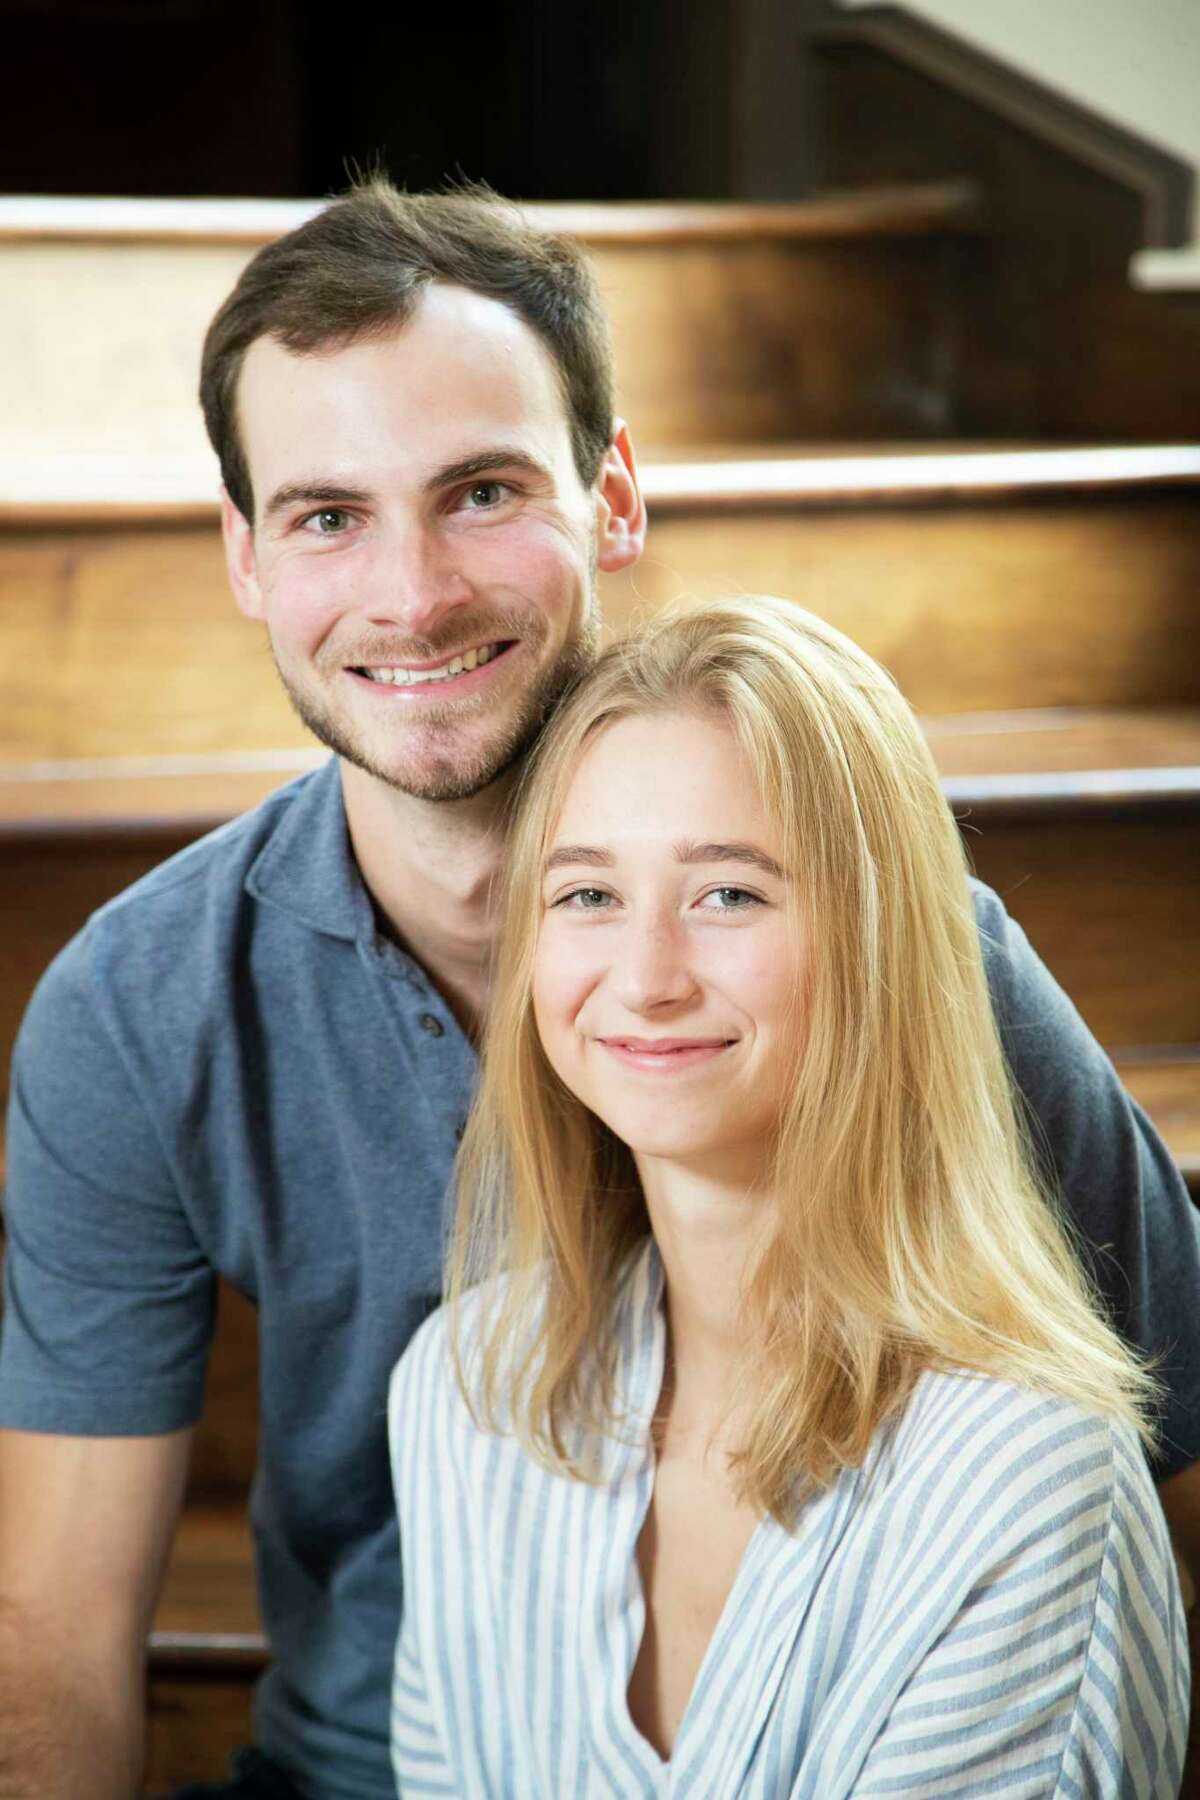 Parker Johnson, 23, and Edie Wlison, 20, in Houston on Saturday, June 6, 2020. After a family trip to Mexico, Edie made a stop in Houston to visit Parker who at the moment was her ex-boyfriend. While she was staying in Houston Edie's brother had tested positive for COVID-19, and Edie needed to quarantine for two weeks. During her time in isolation Edie and Parker rekindled their relation.